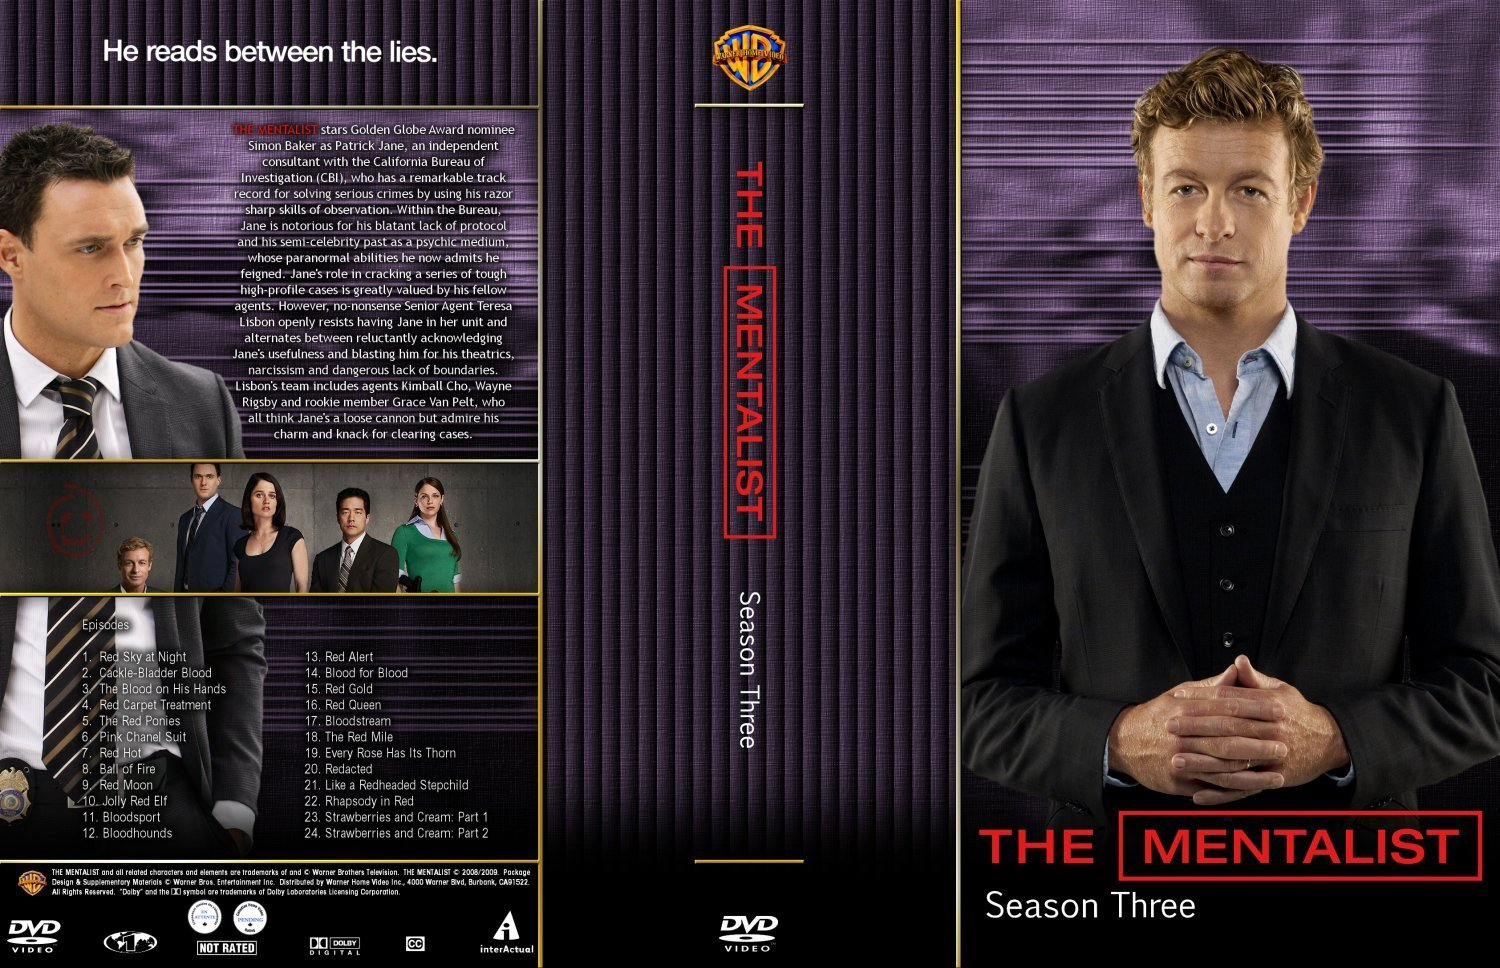 The Mentalist Season 3 | Dvd Covers and Labels